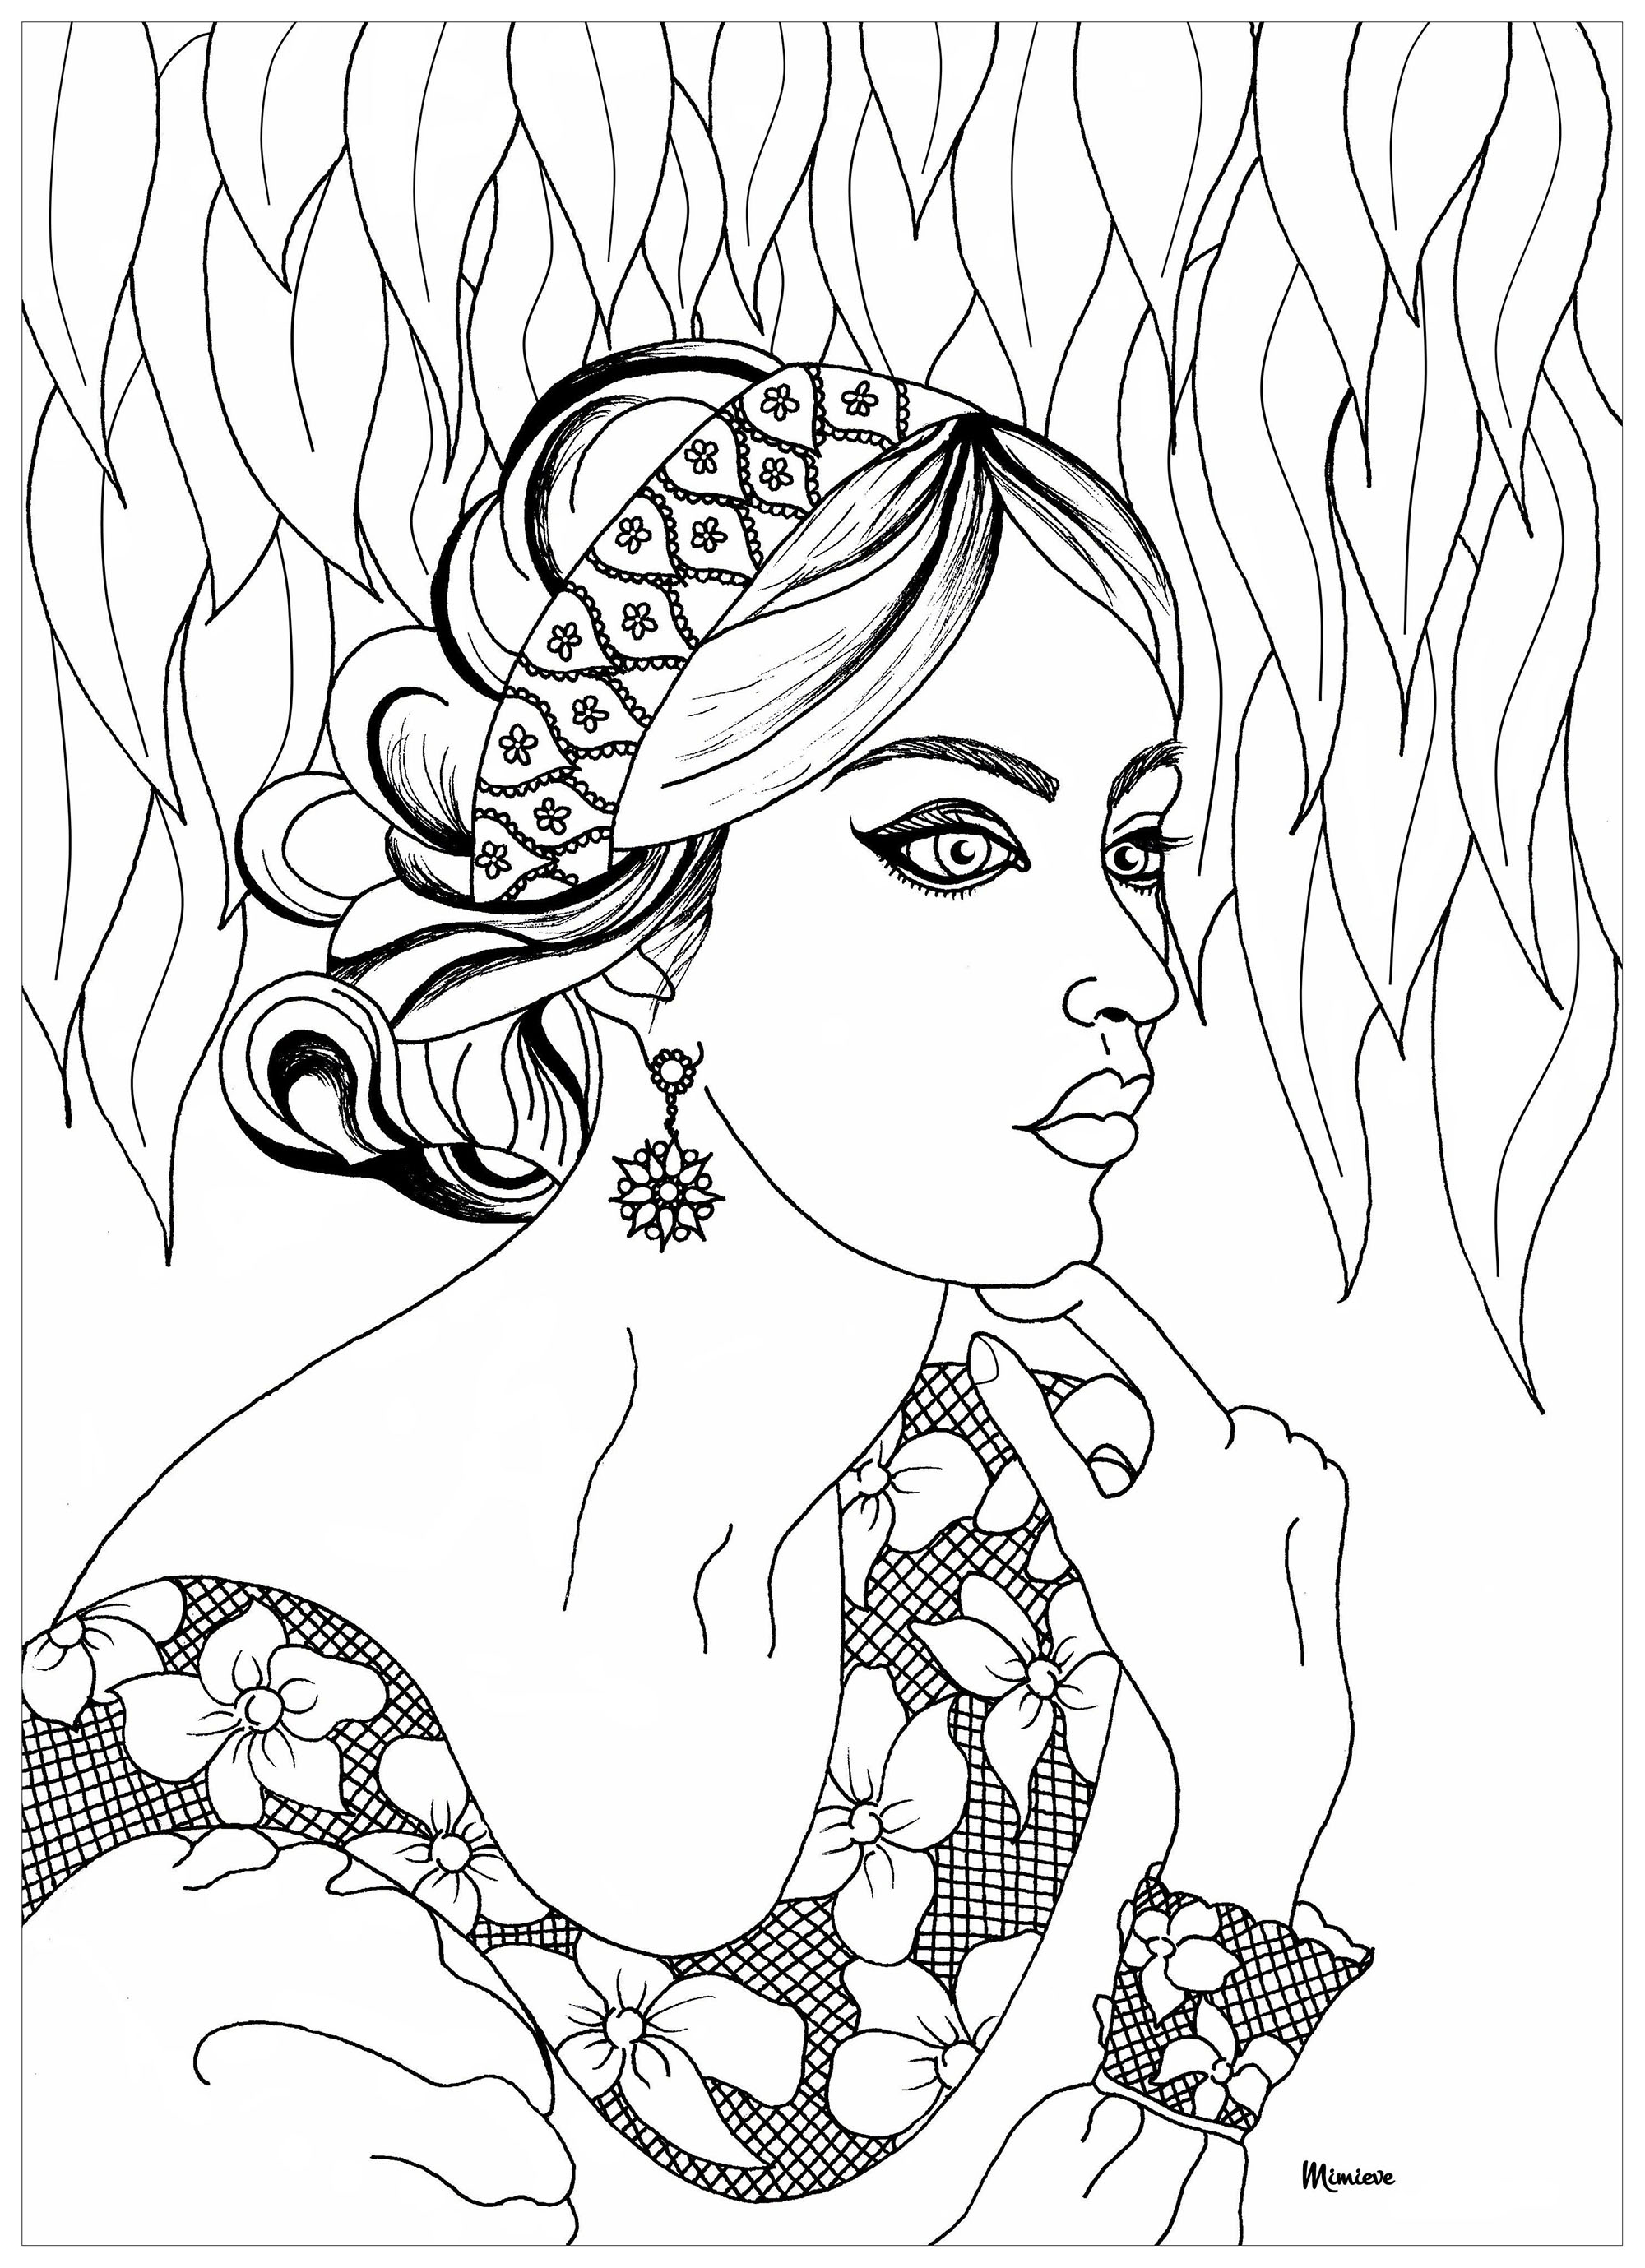 Femme dentelle anti stress art th rapie coloriages - Coloriage art therapie a imprimer ...